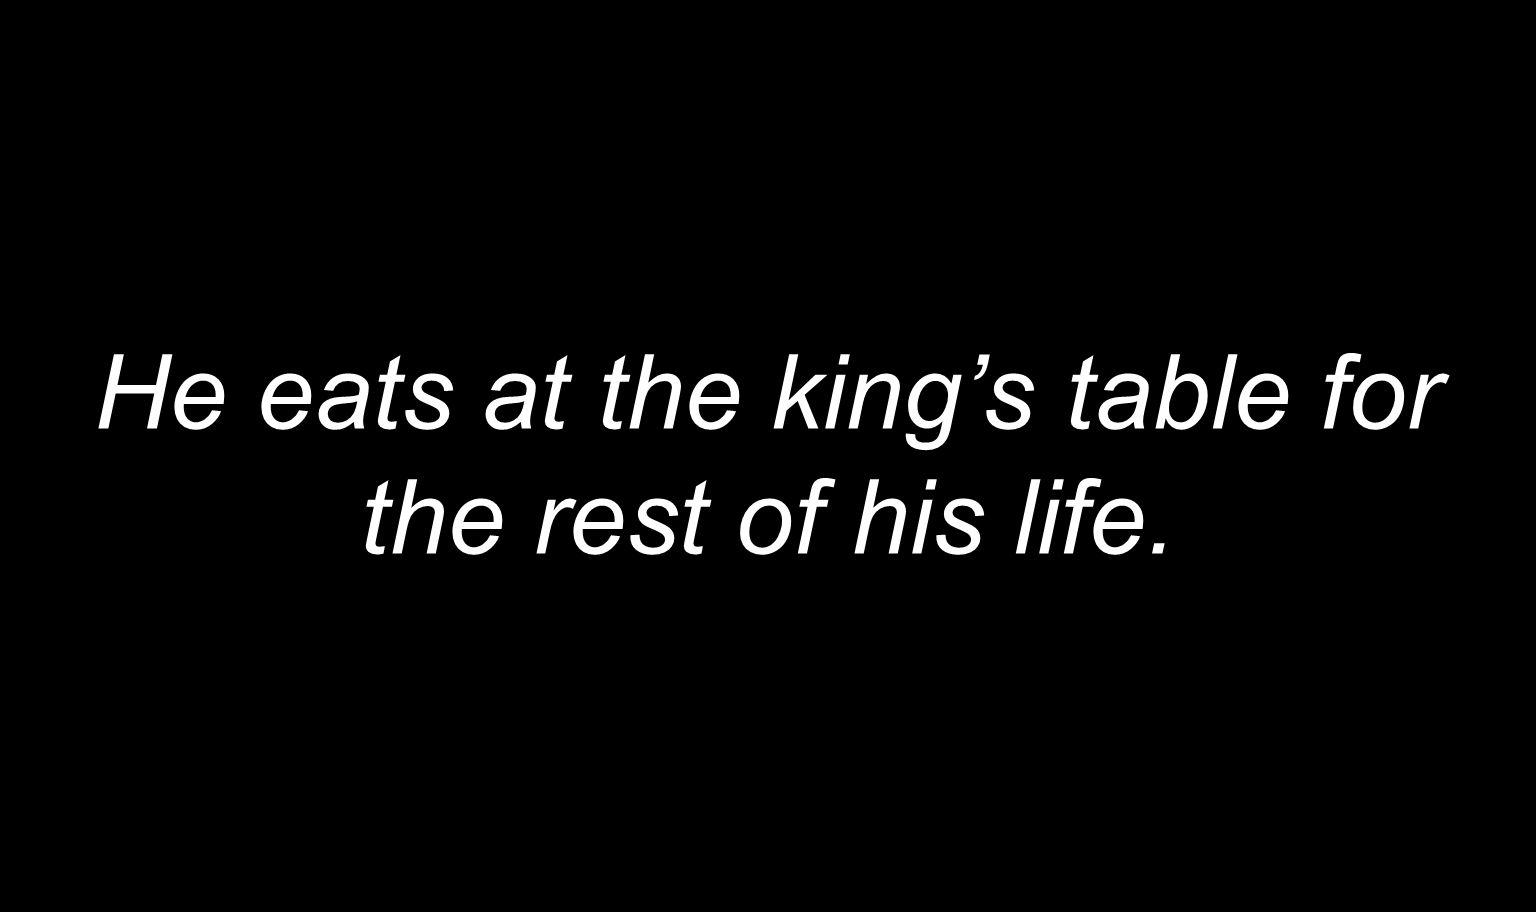 He eats at the king's table for the rest of his life.